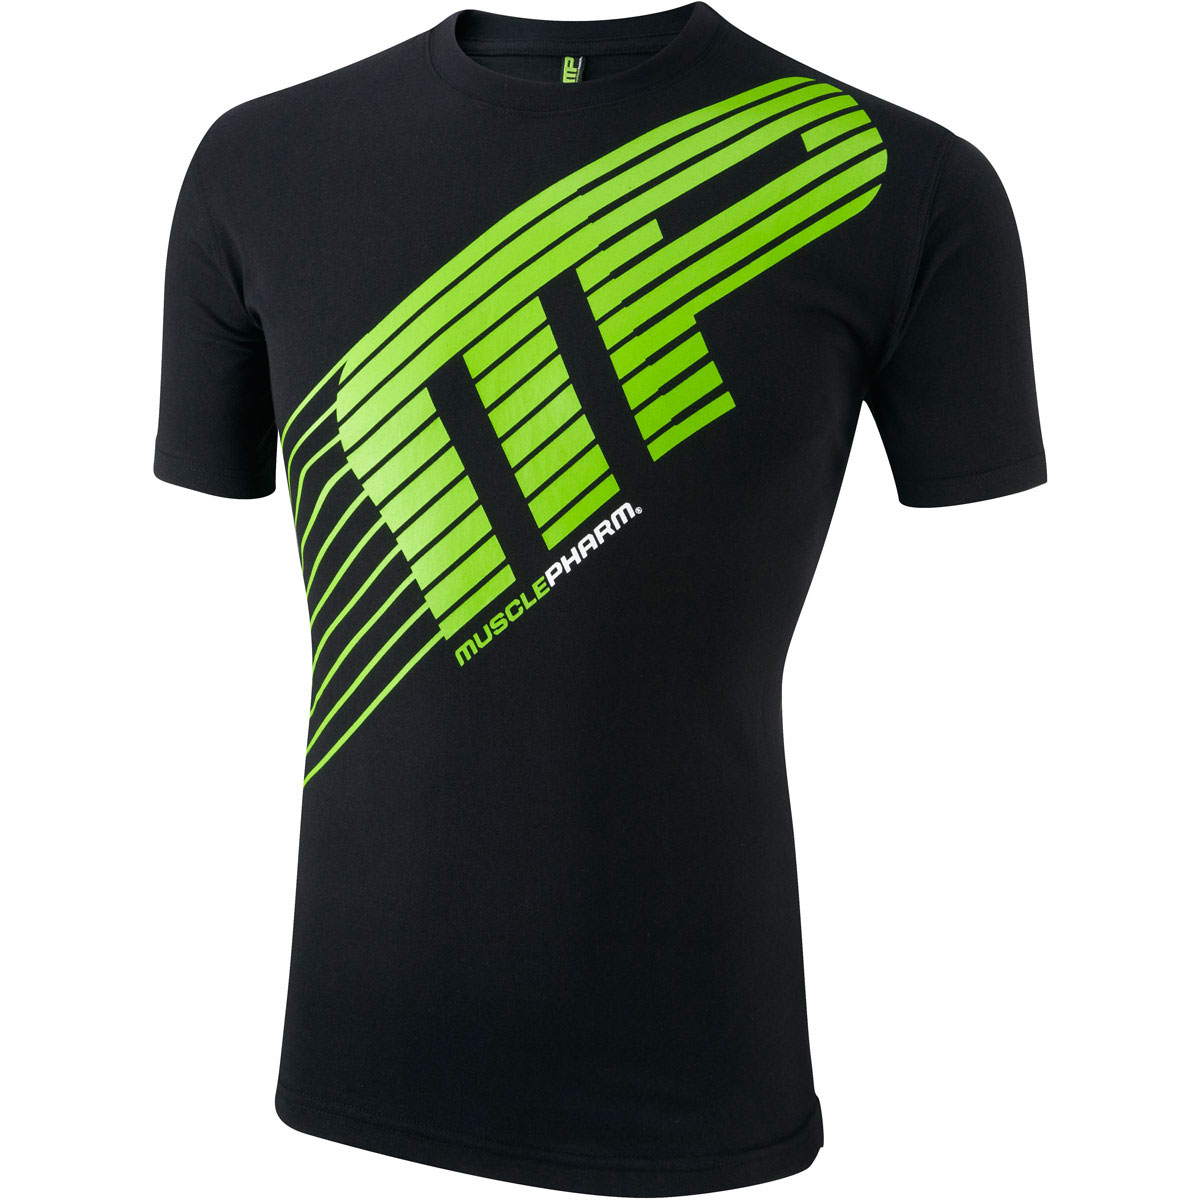 Musclepharm mens short sleeve printed t shirt gym cotton Fitness shirts for men